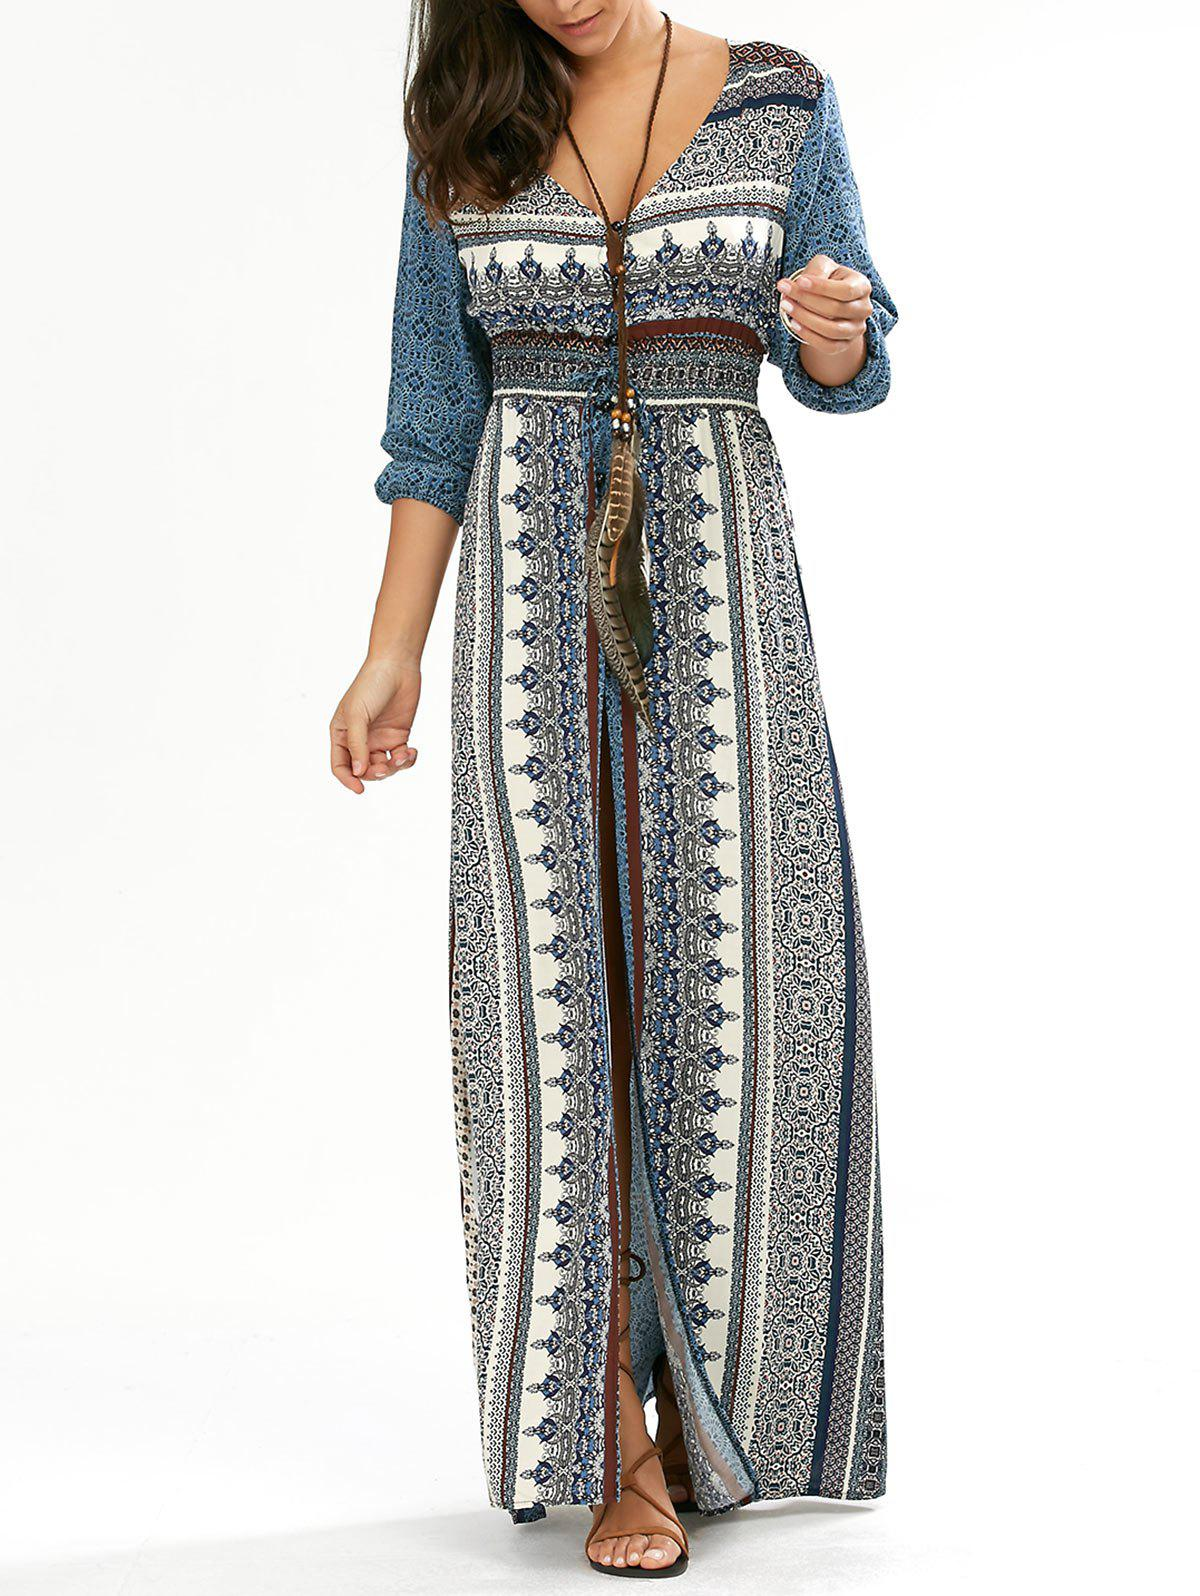 Blouse maxi dress collection